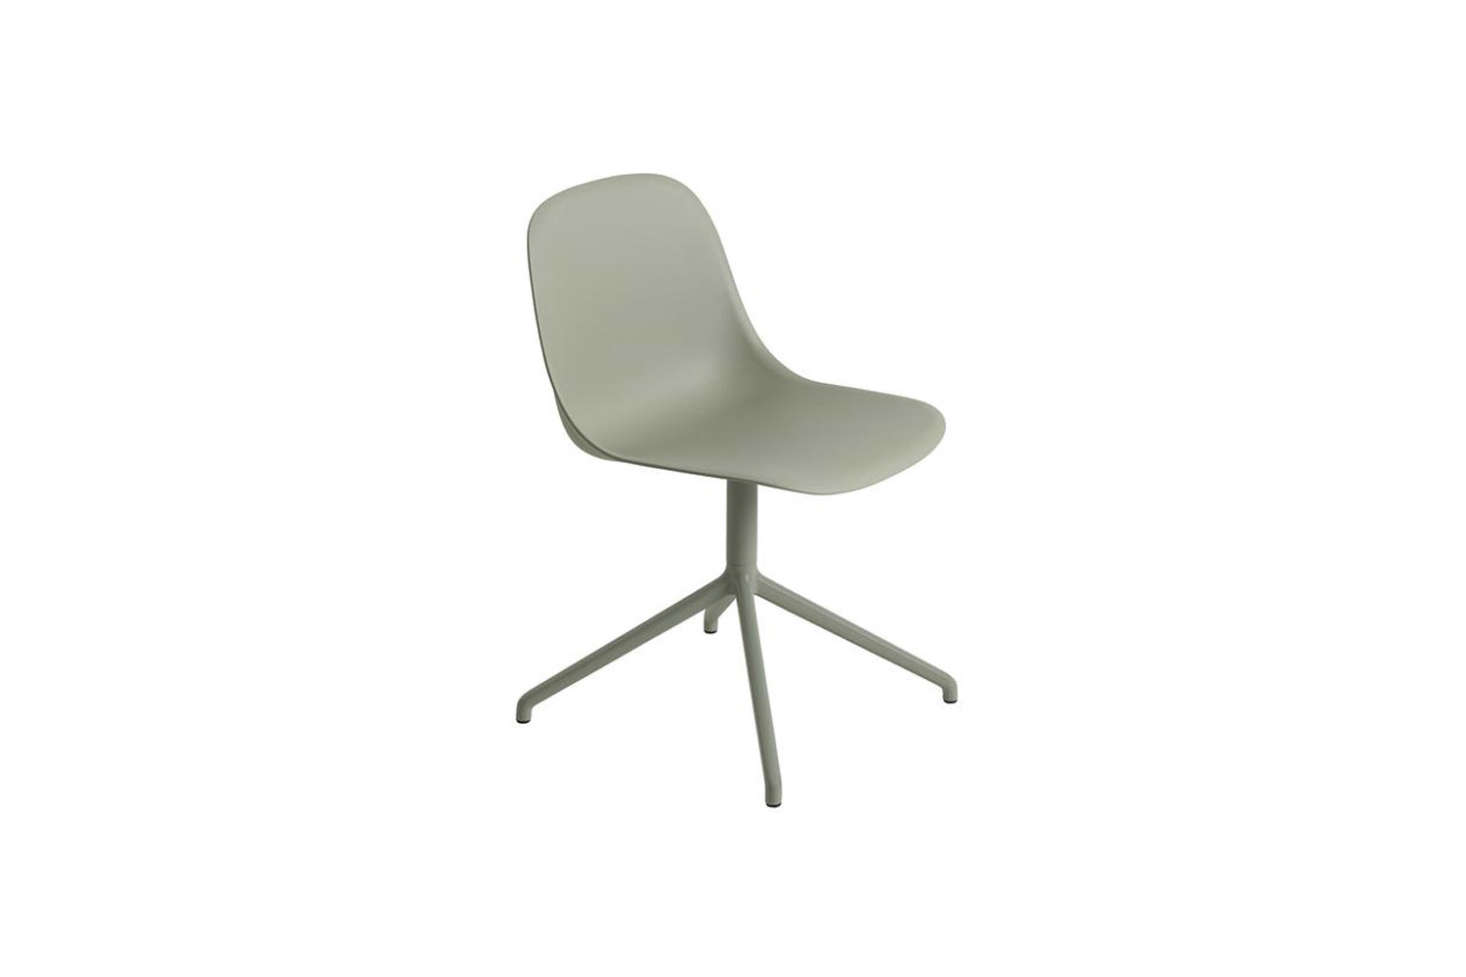 office chair steel base with wheels best canopy 10 easy pieces modern desk chairs without remodelista the muuto fiber side a swivel comes in six colors shown